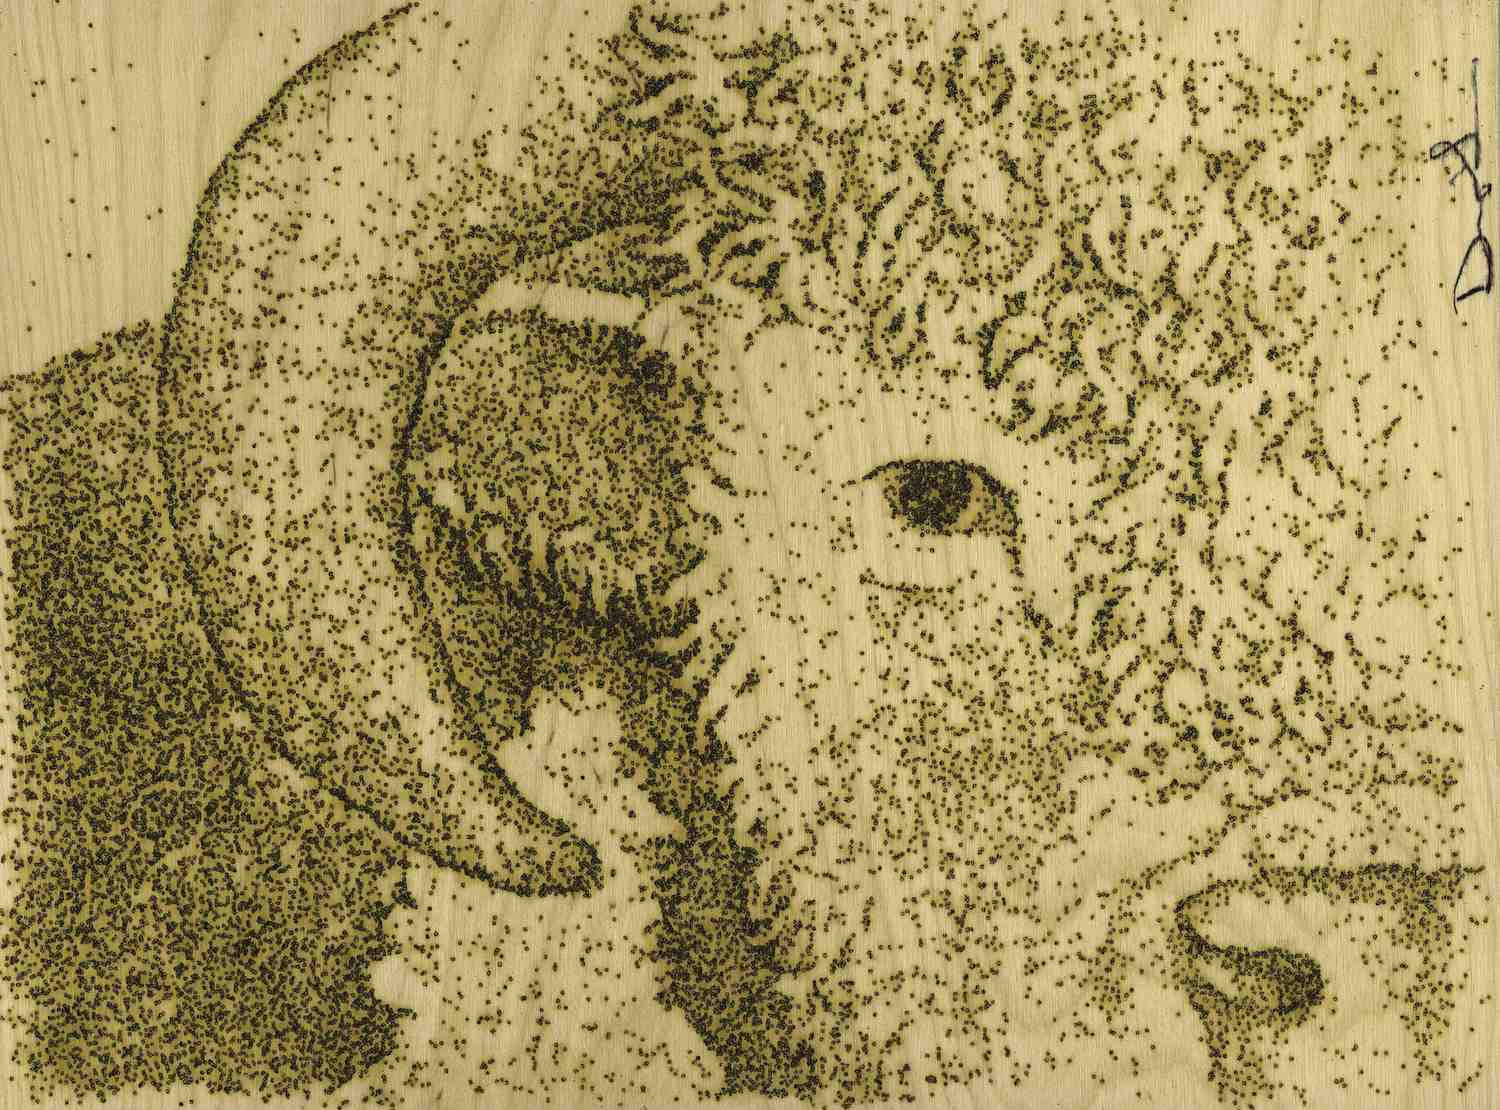 Hereford Cow (Prints)